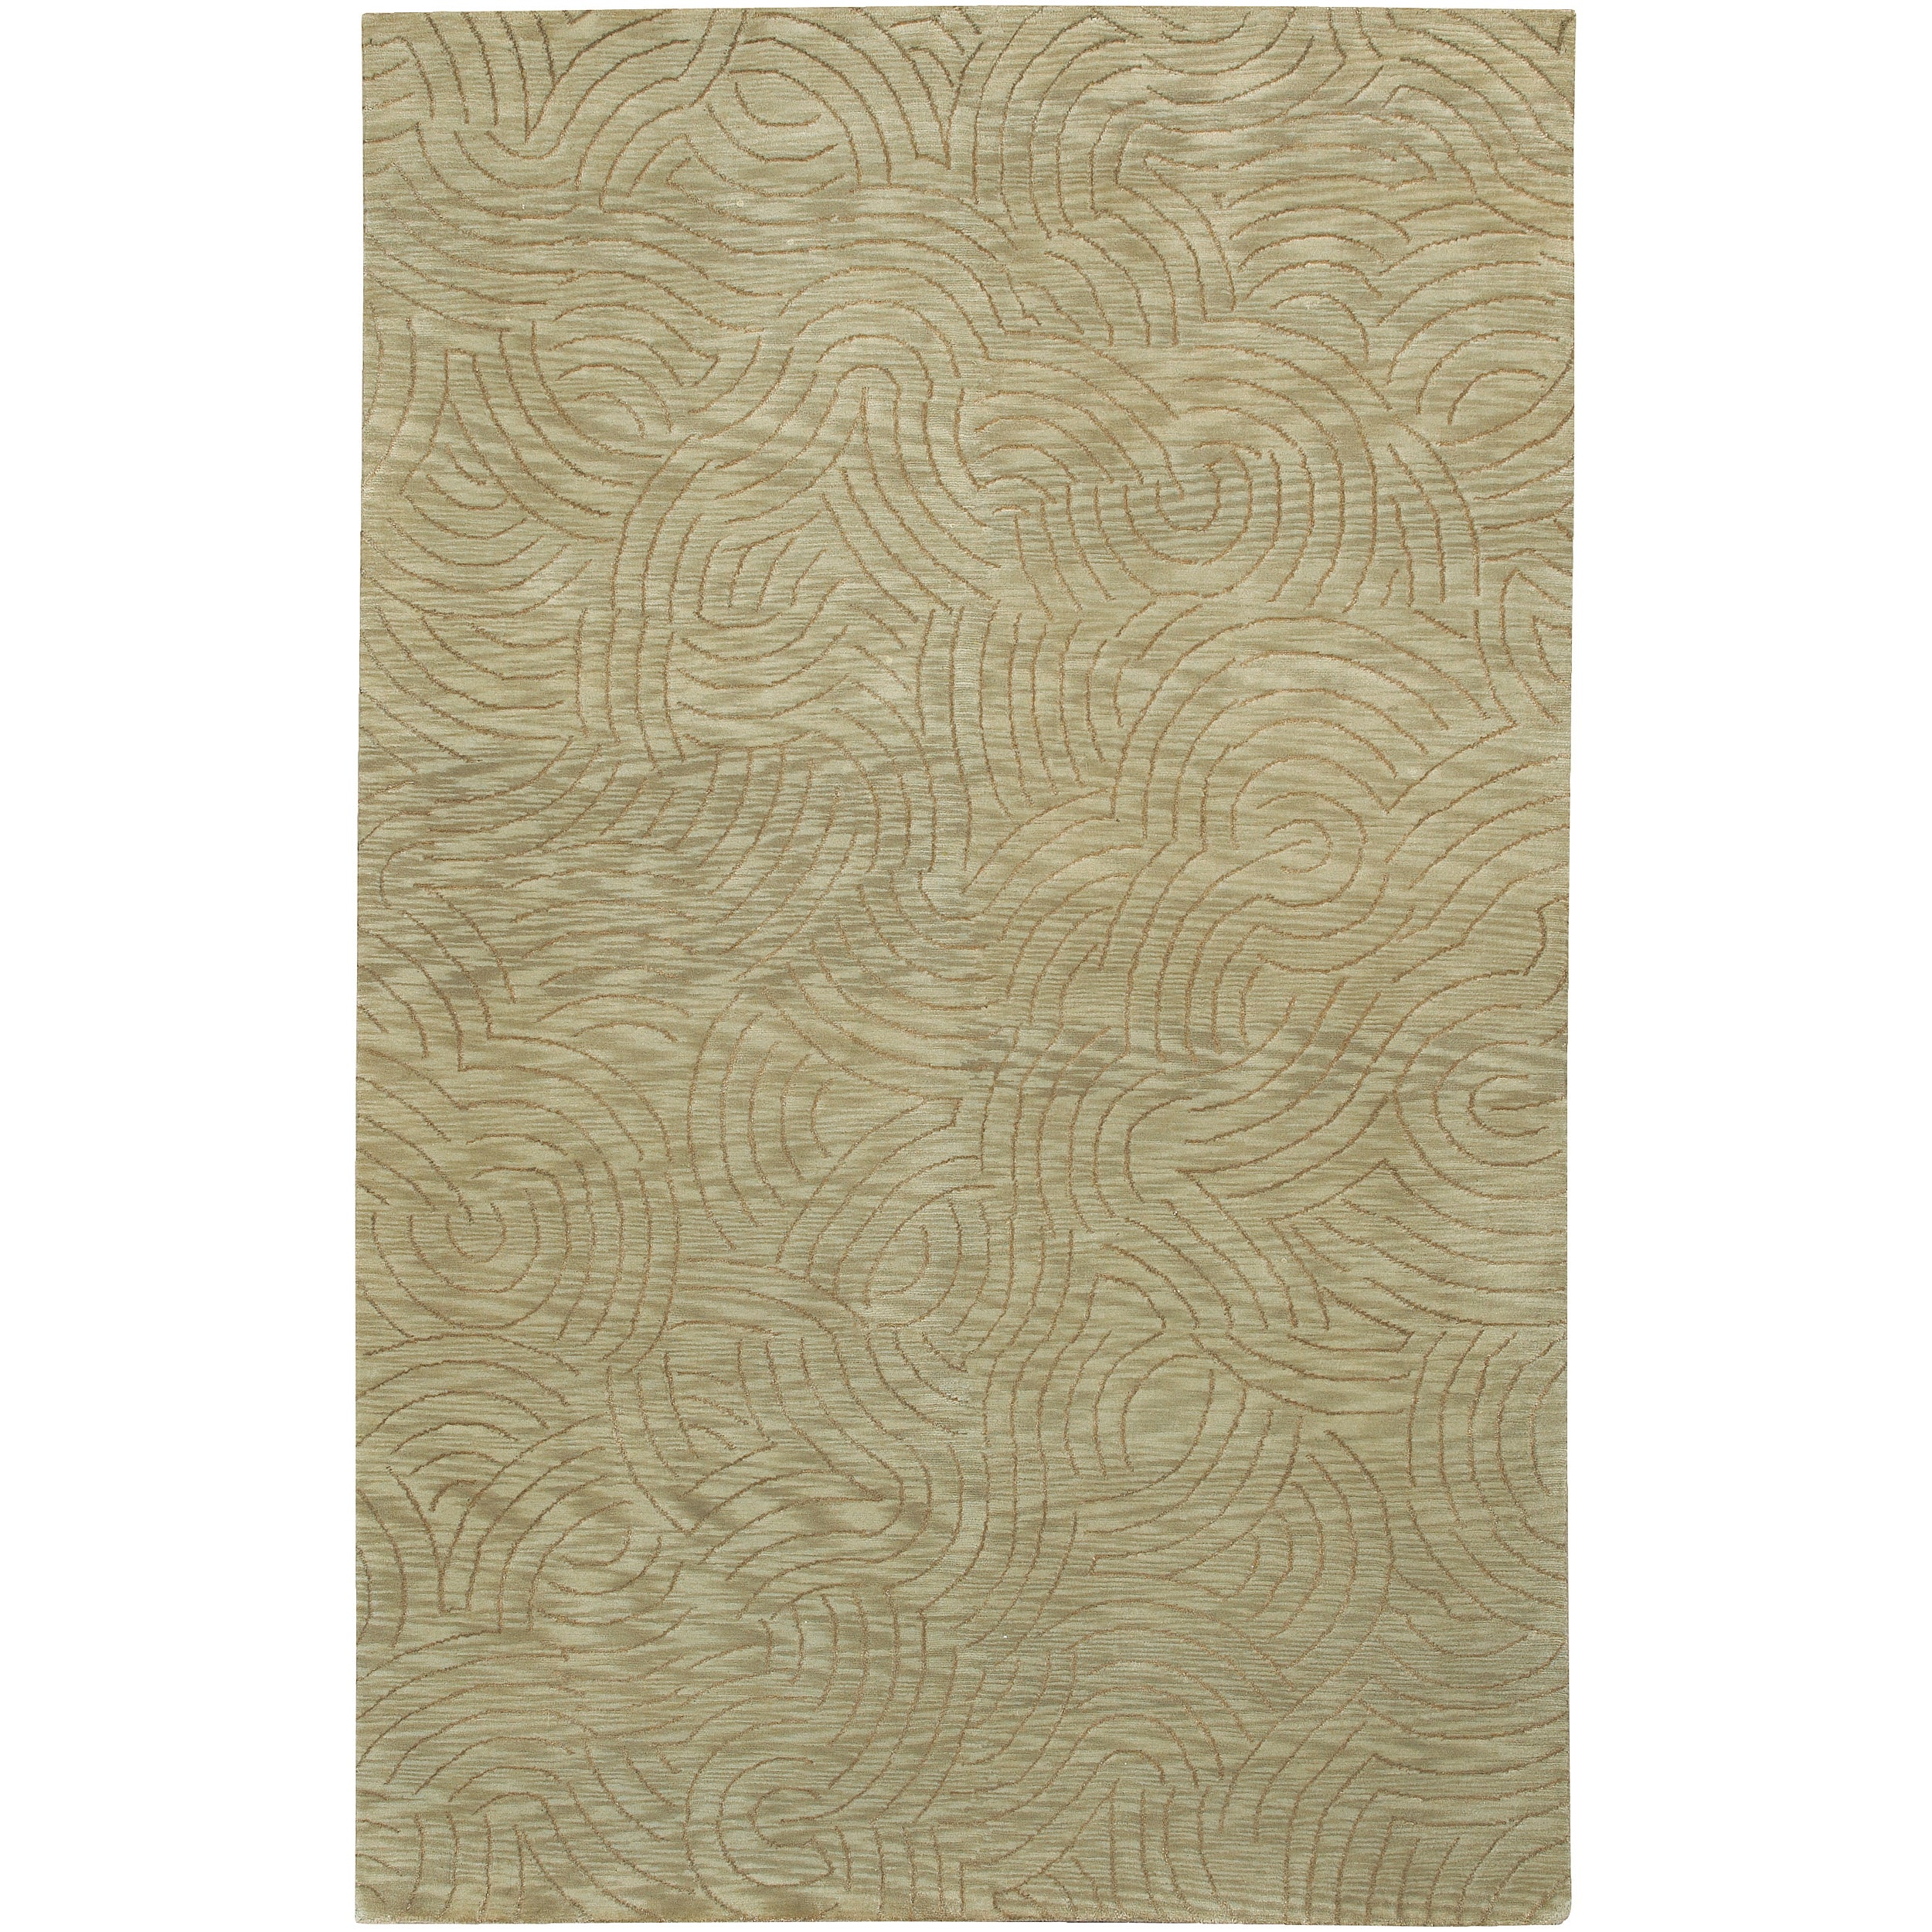 Hand-Knotted Multicolored Vilas Abstract-Design Wool Area Rug (5' x 8')